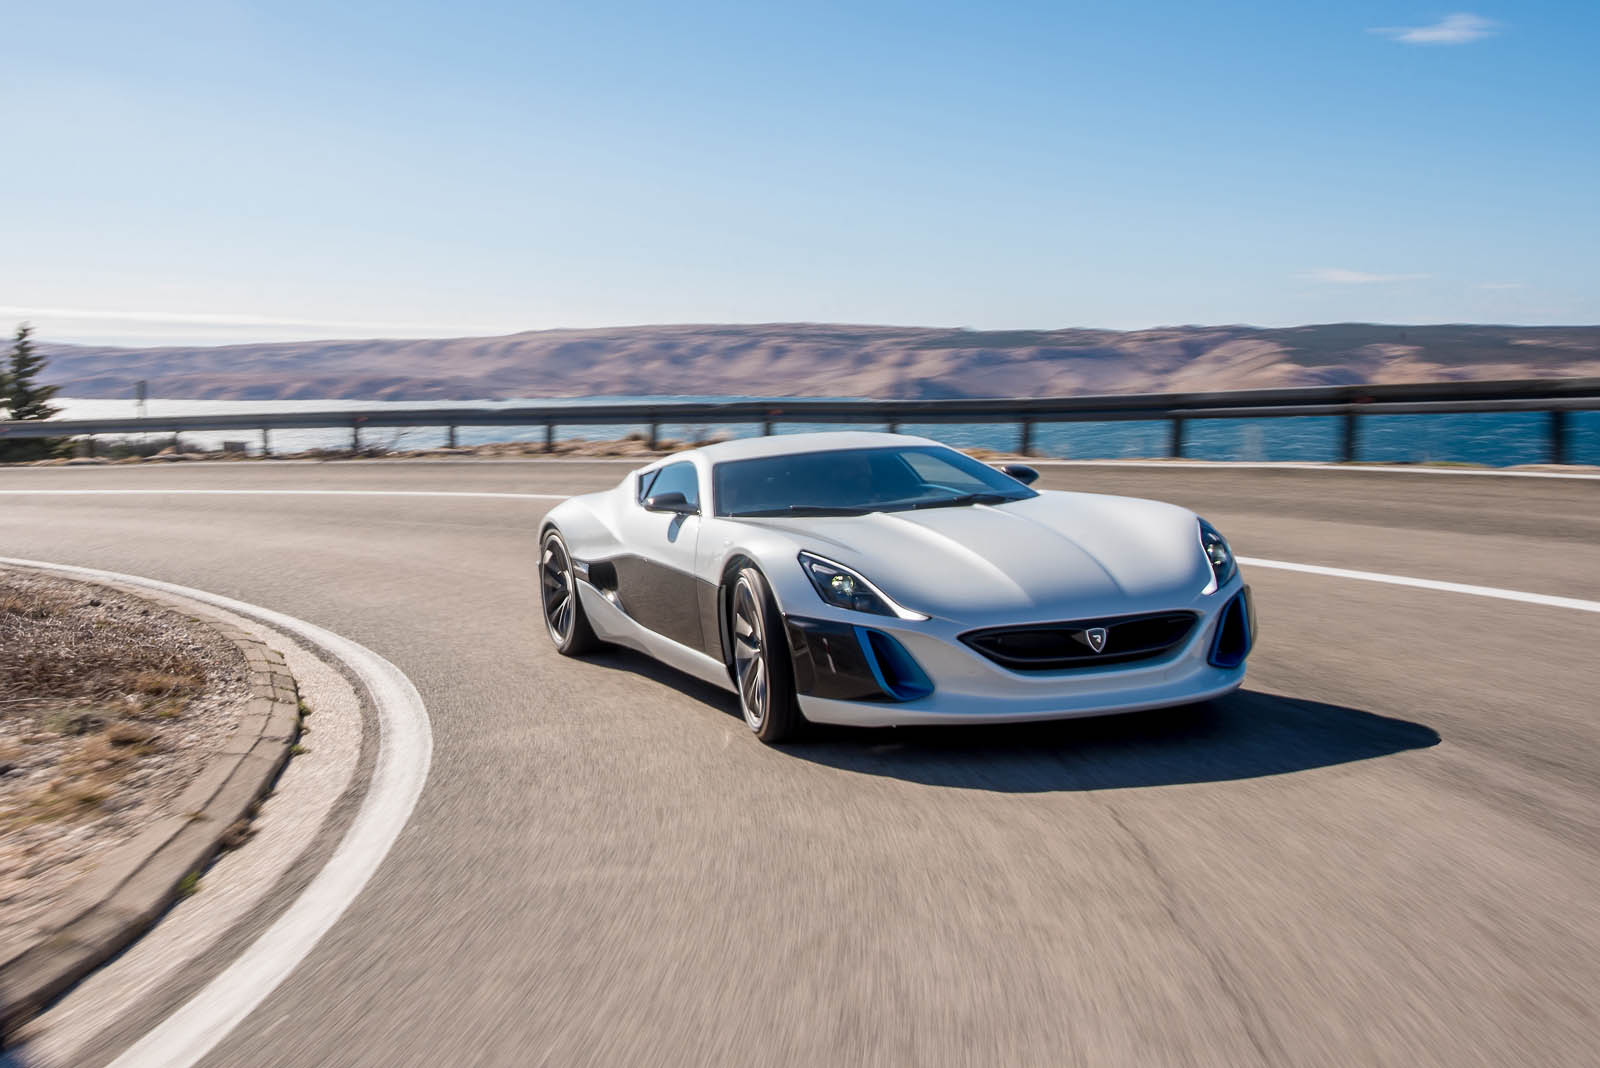 Rimac Concept_One in Geneva 2017 (18)